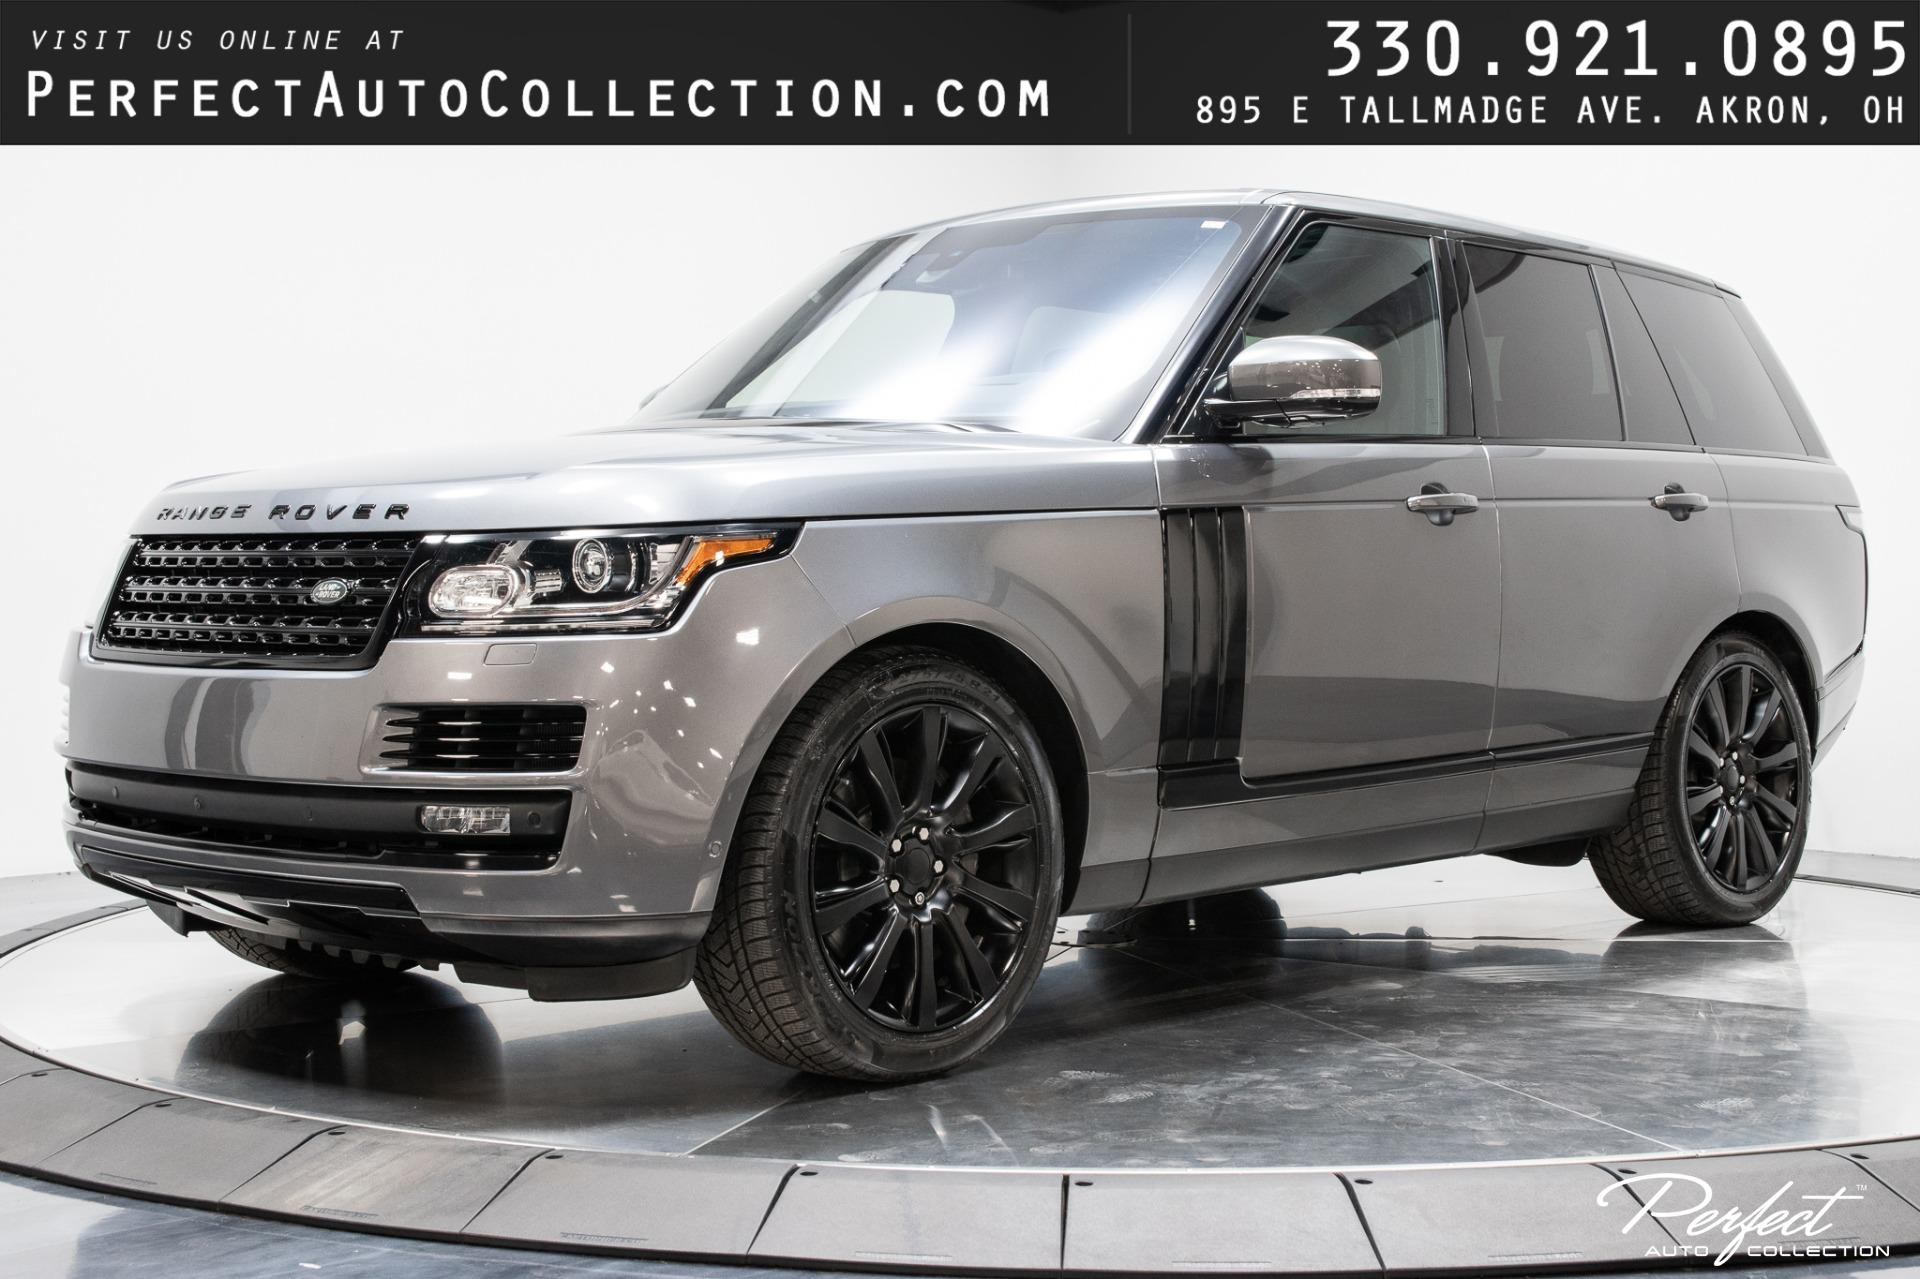 Used 2016 Land Rover Range Rover Supercharged for sale $60,993 at Perfect Auto Collection in Akron OH 44310 1